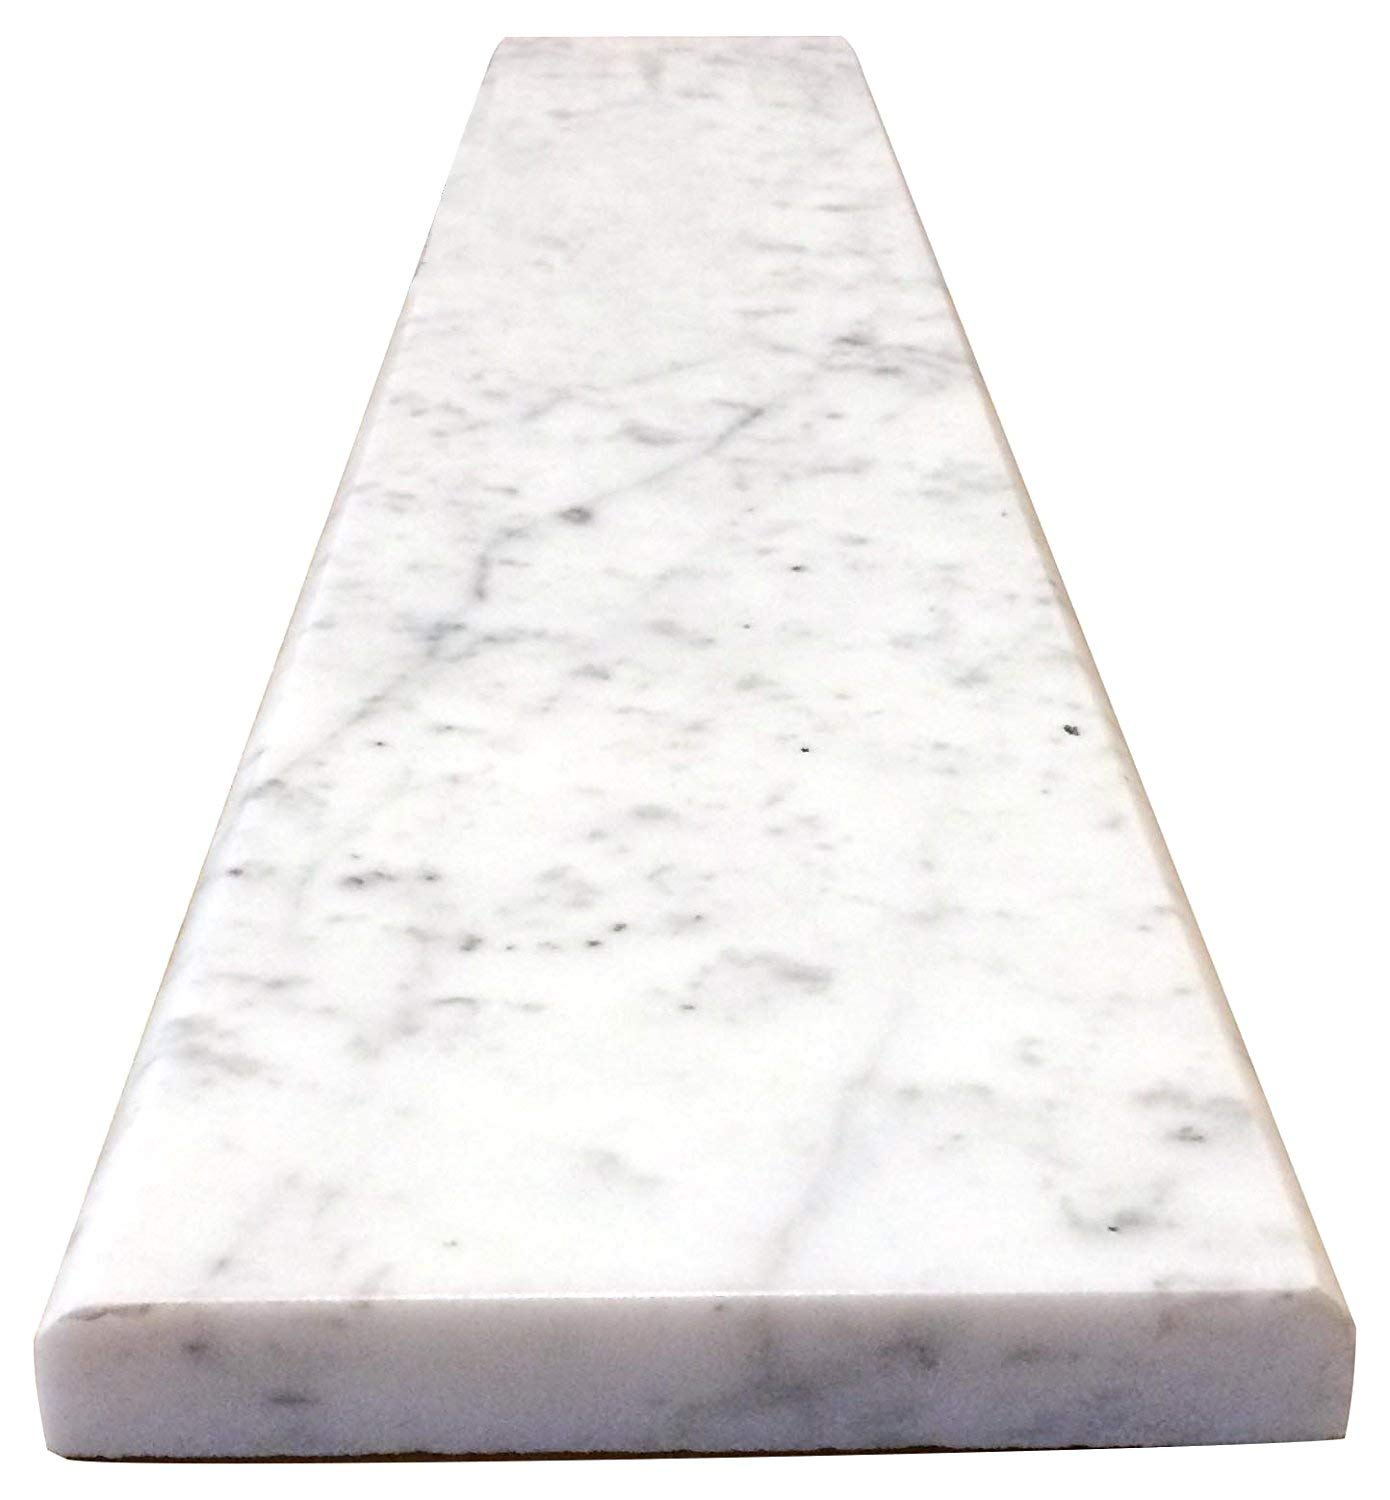 Vogue Tile Carrara Marble Threshold (Marble Saddle) - Polished - (4'' x 60'') by Vogue Tile